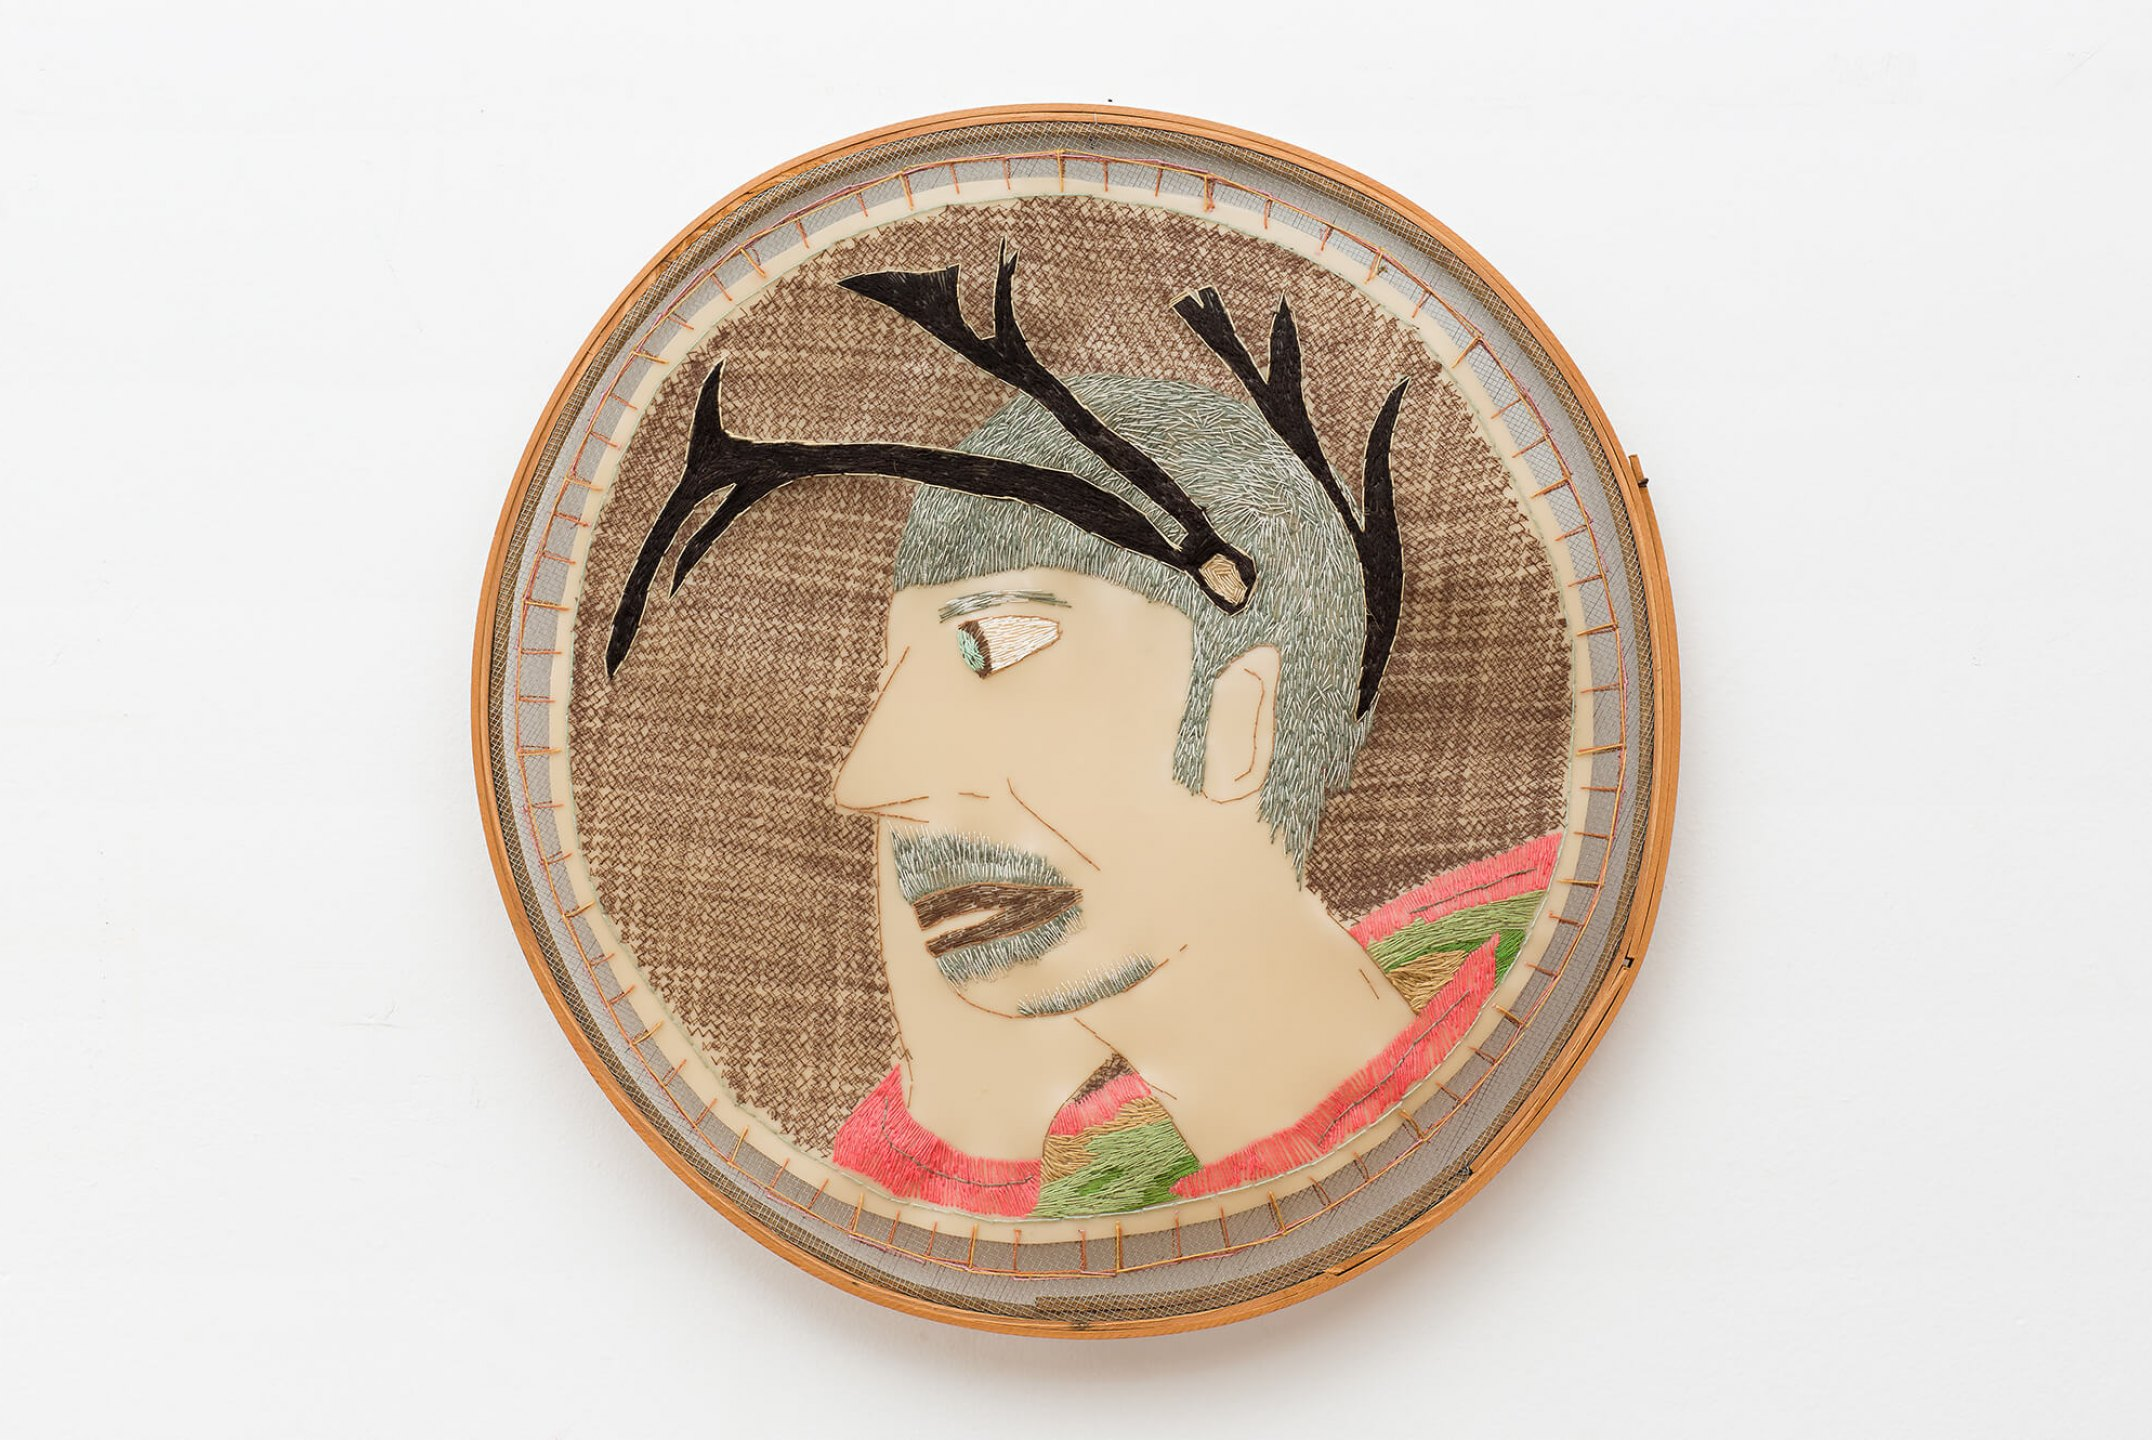 f.marquespeteado,<em> Homem veado de Minas Gerais, from Camafeu e broches de reis, santos e homens veados series</em>, 2013, desing hand-embroided on PVC under sieve, 59,5 ø cm - Mendes Wood DM